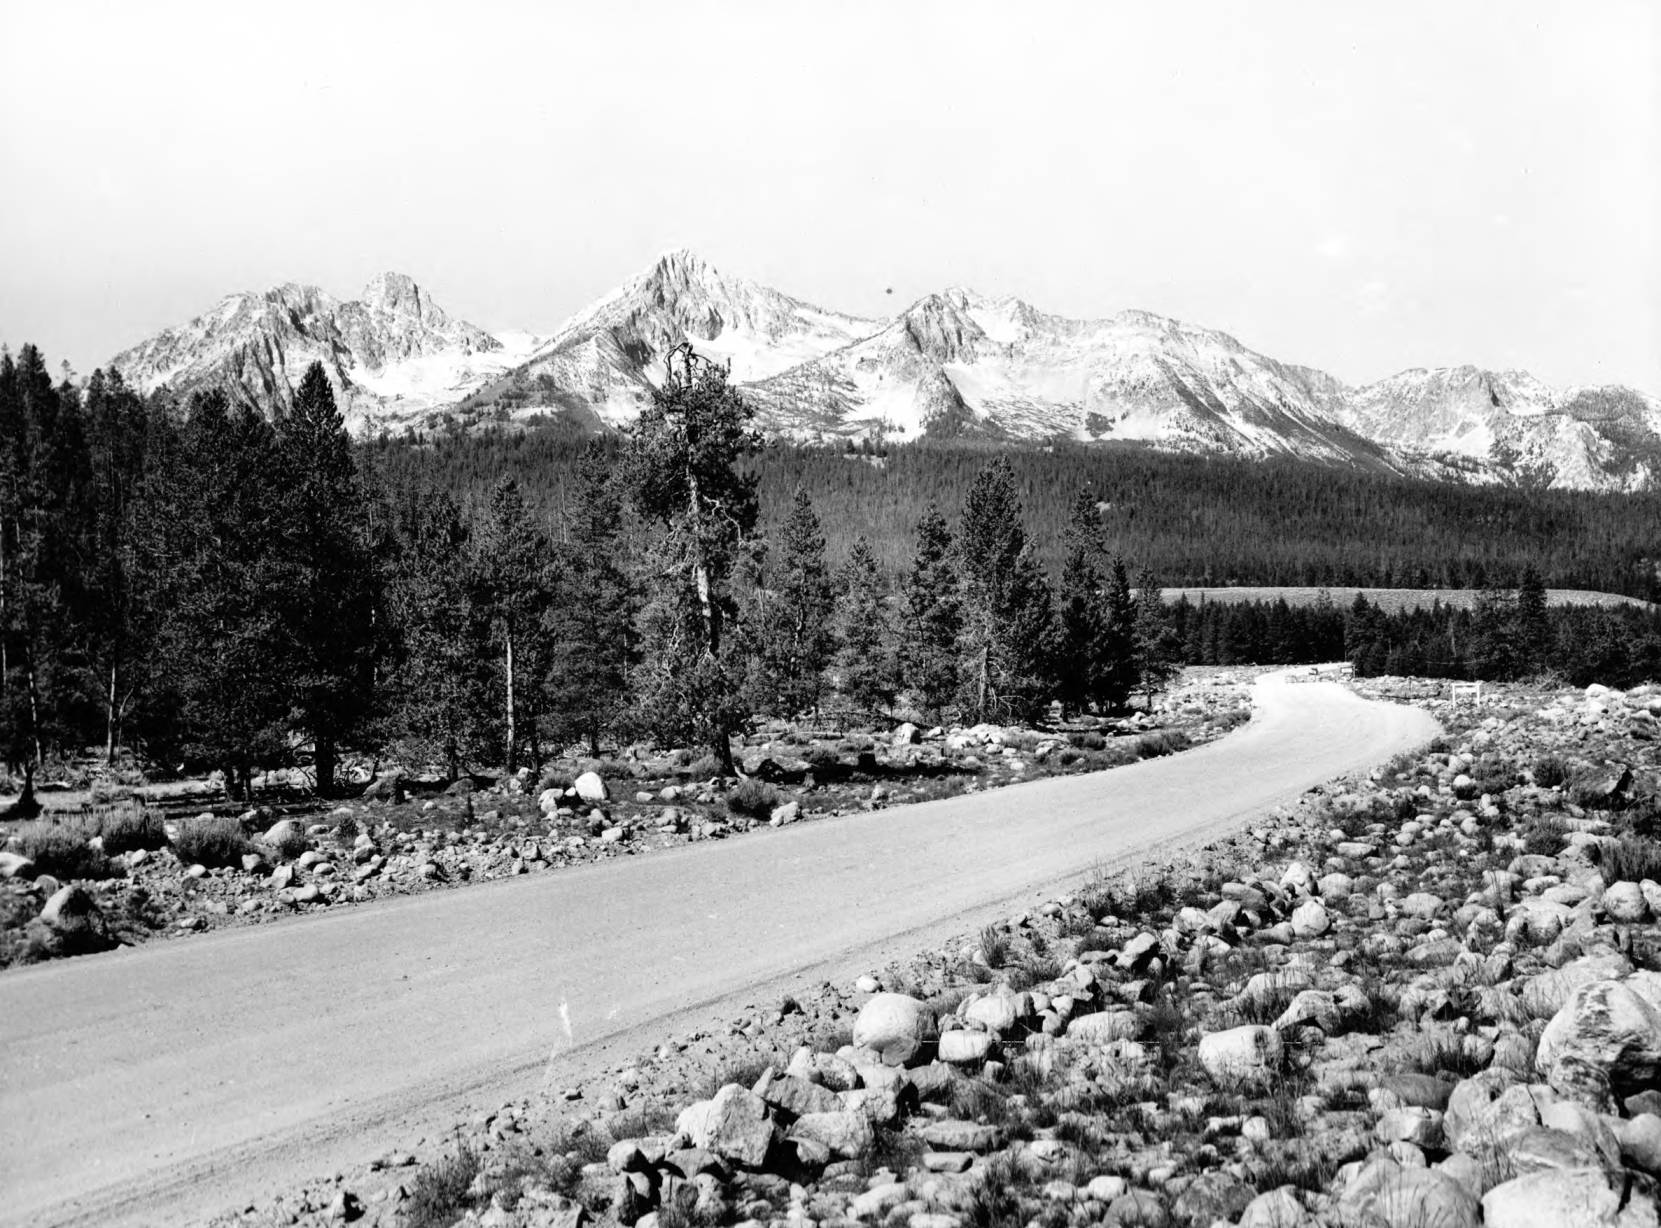 item thumbnail for Route 21, 4 miles north of Stanley, Sawtooth Range in background